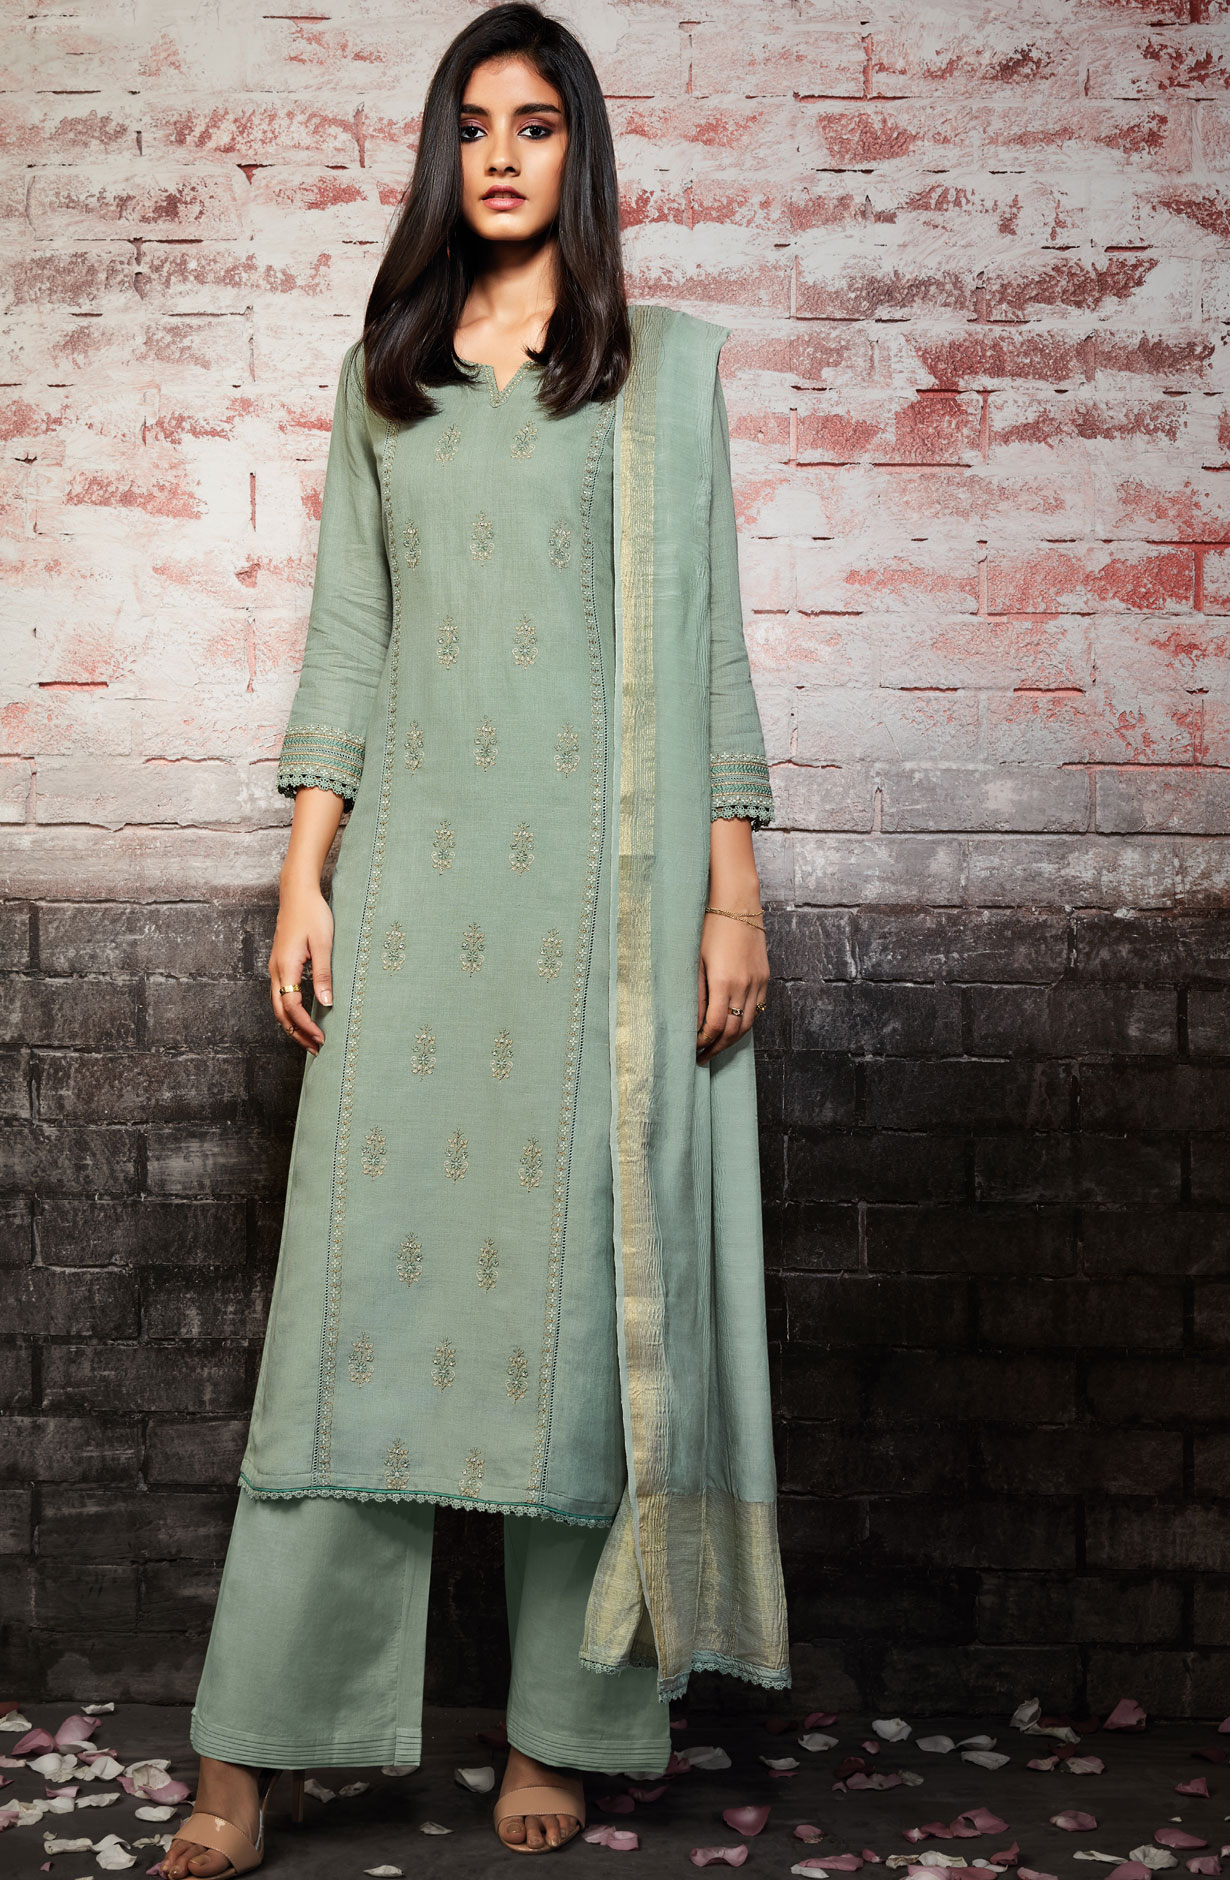 f615d645d38 Embroidery Cotton Ready-to-Stitch Salwar Kameez In Pastel Green ...